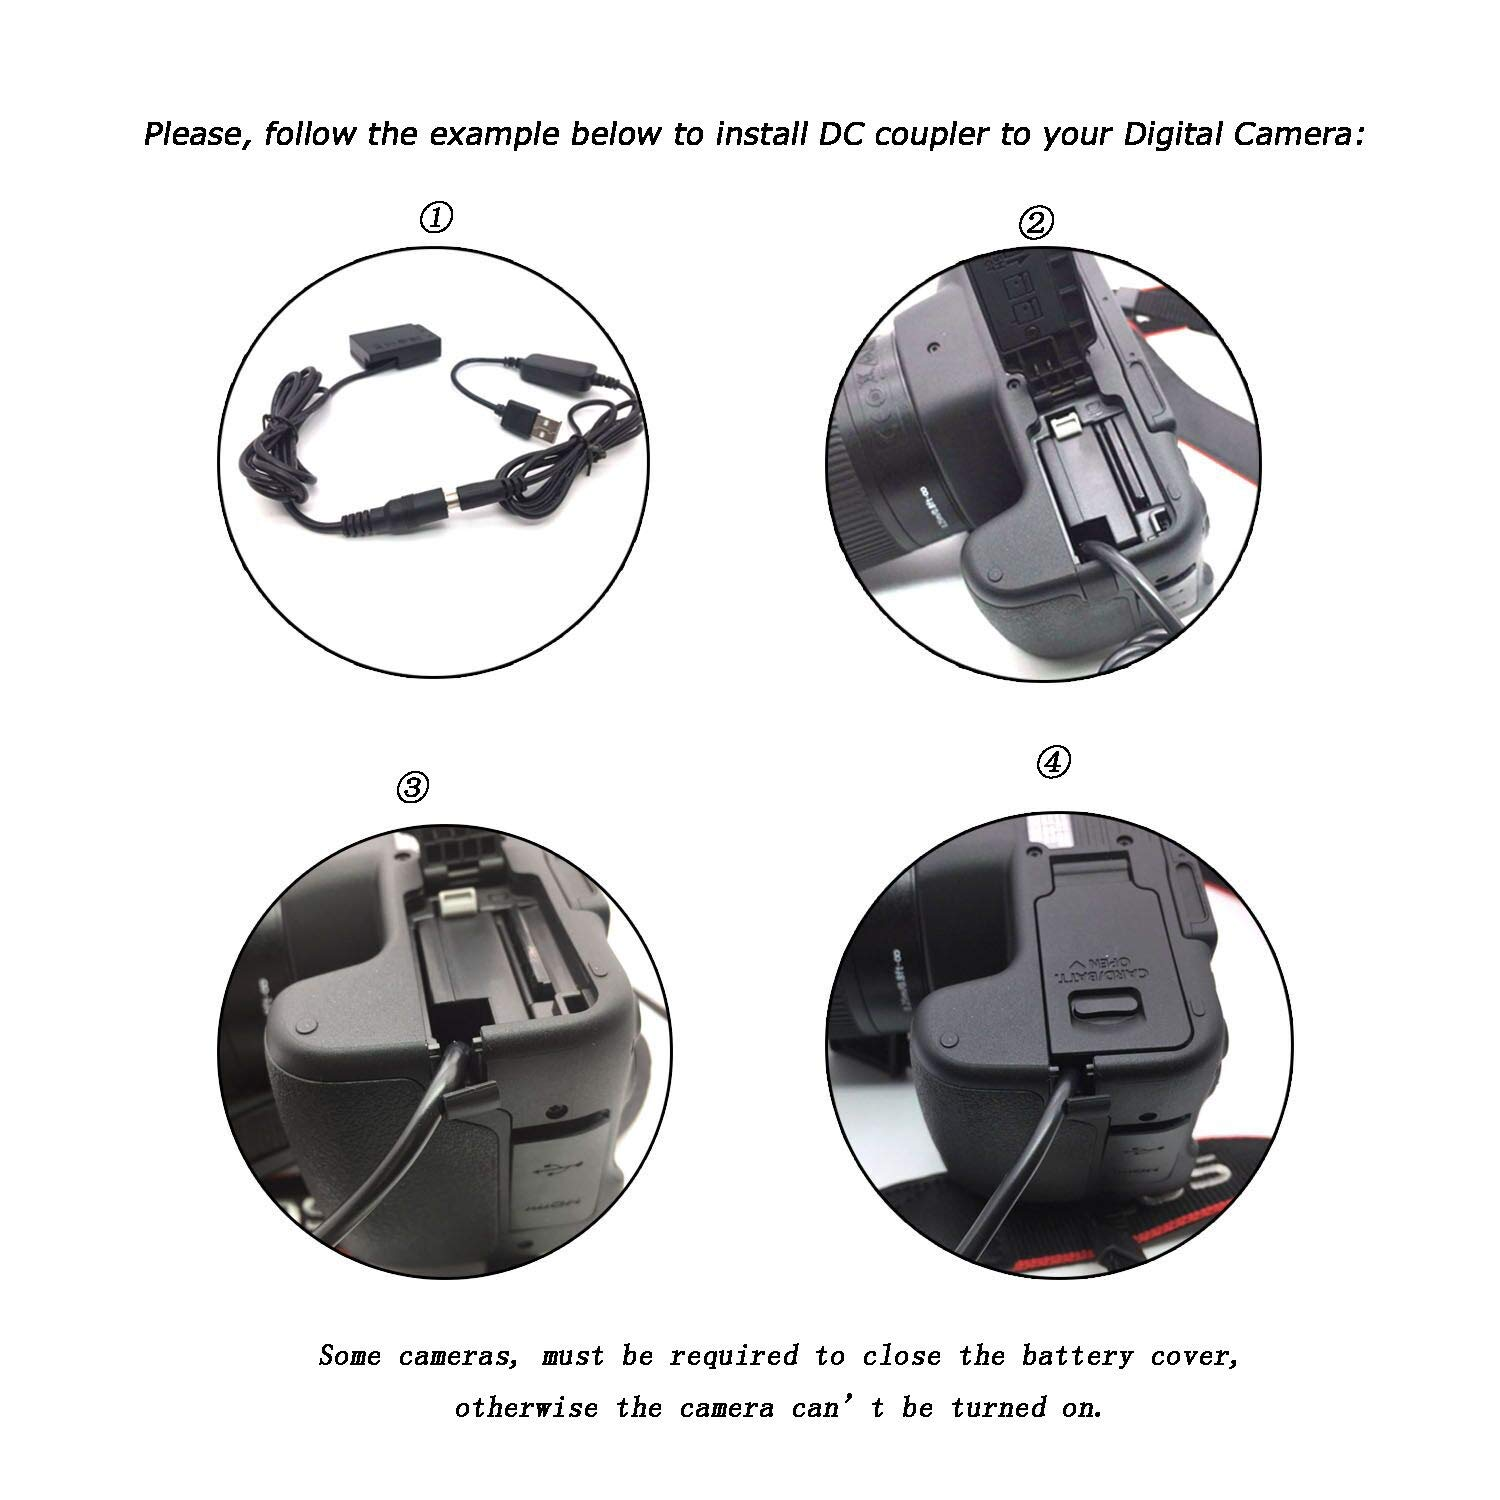 3A Power Charger Kit for Fujifilm X-PRO1 X-E1 HS33 X-T1 HS50 NP-W126 CP-W126 Dummy Battery Mobile Power 5V USB Cable DC8.4V